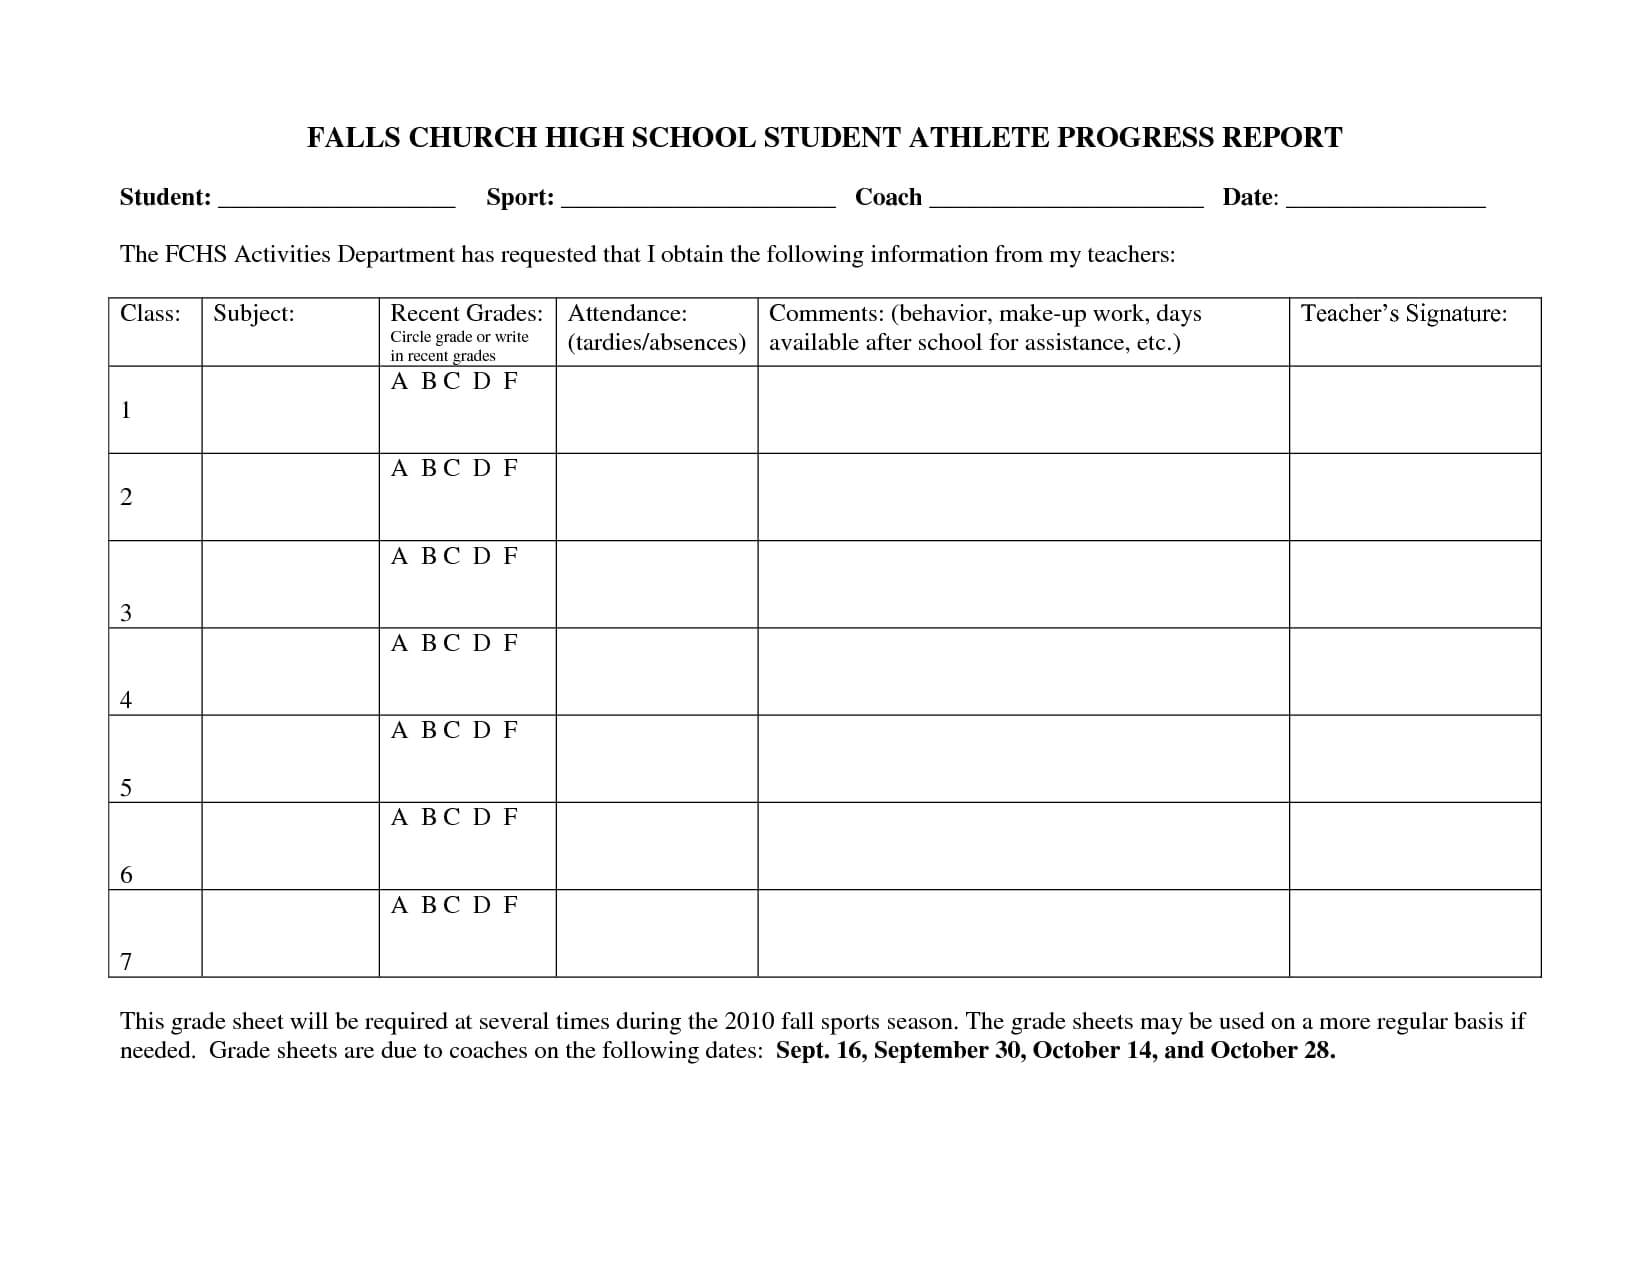 Falls Church High School Student Athlete Progress Report Intended For High School Progress Report Template